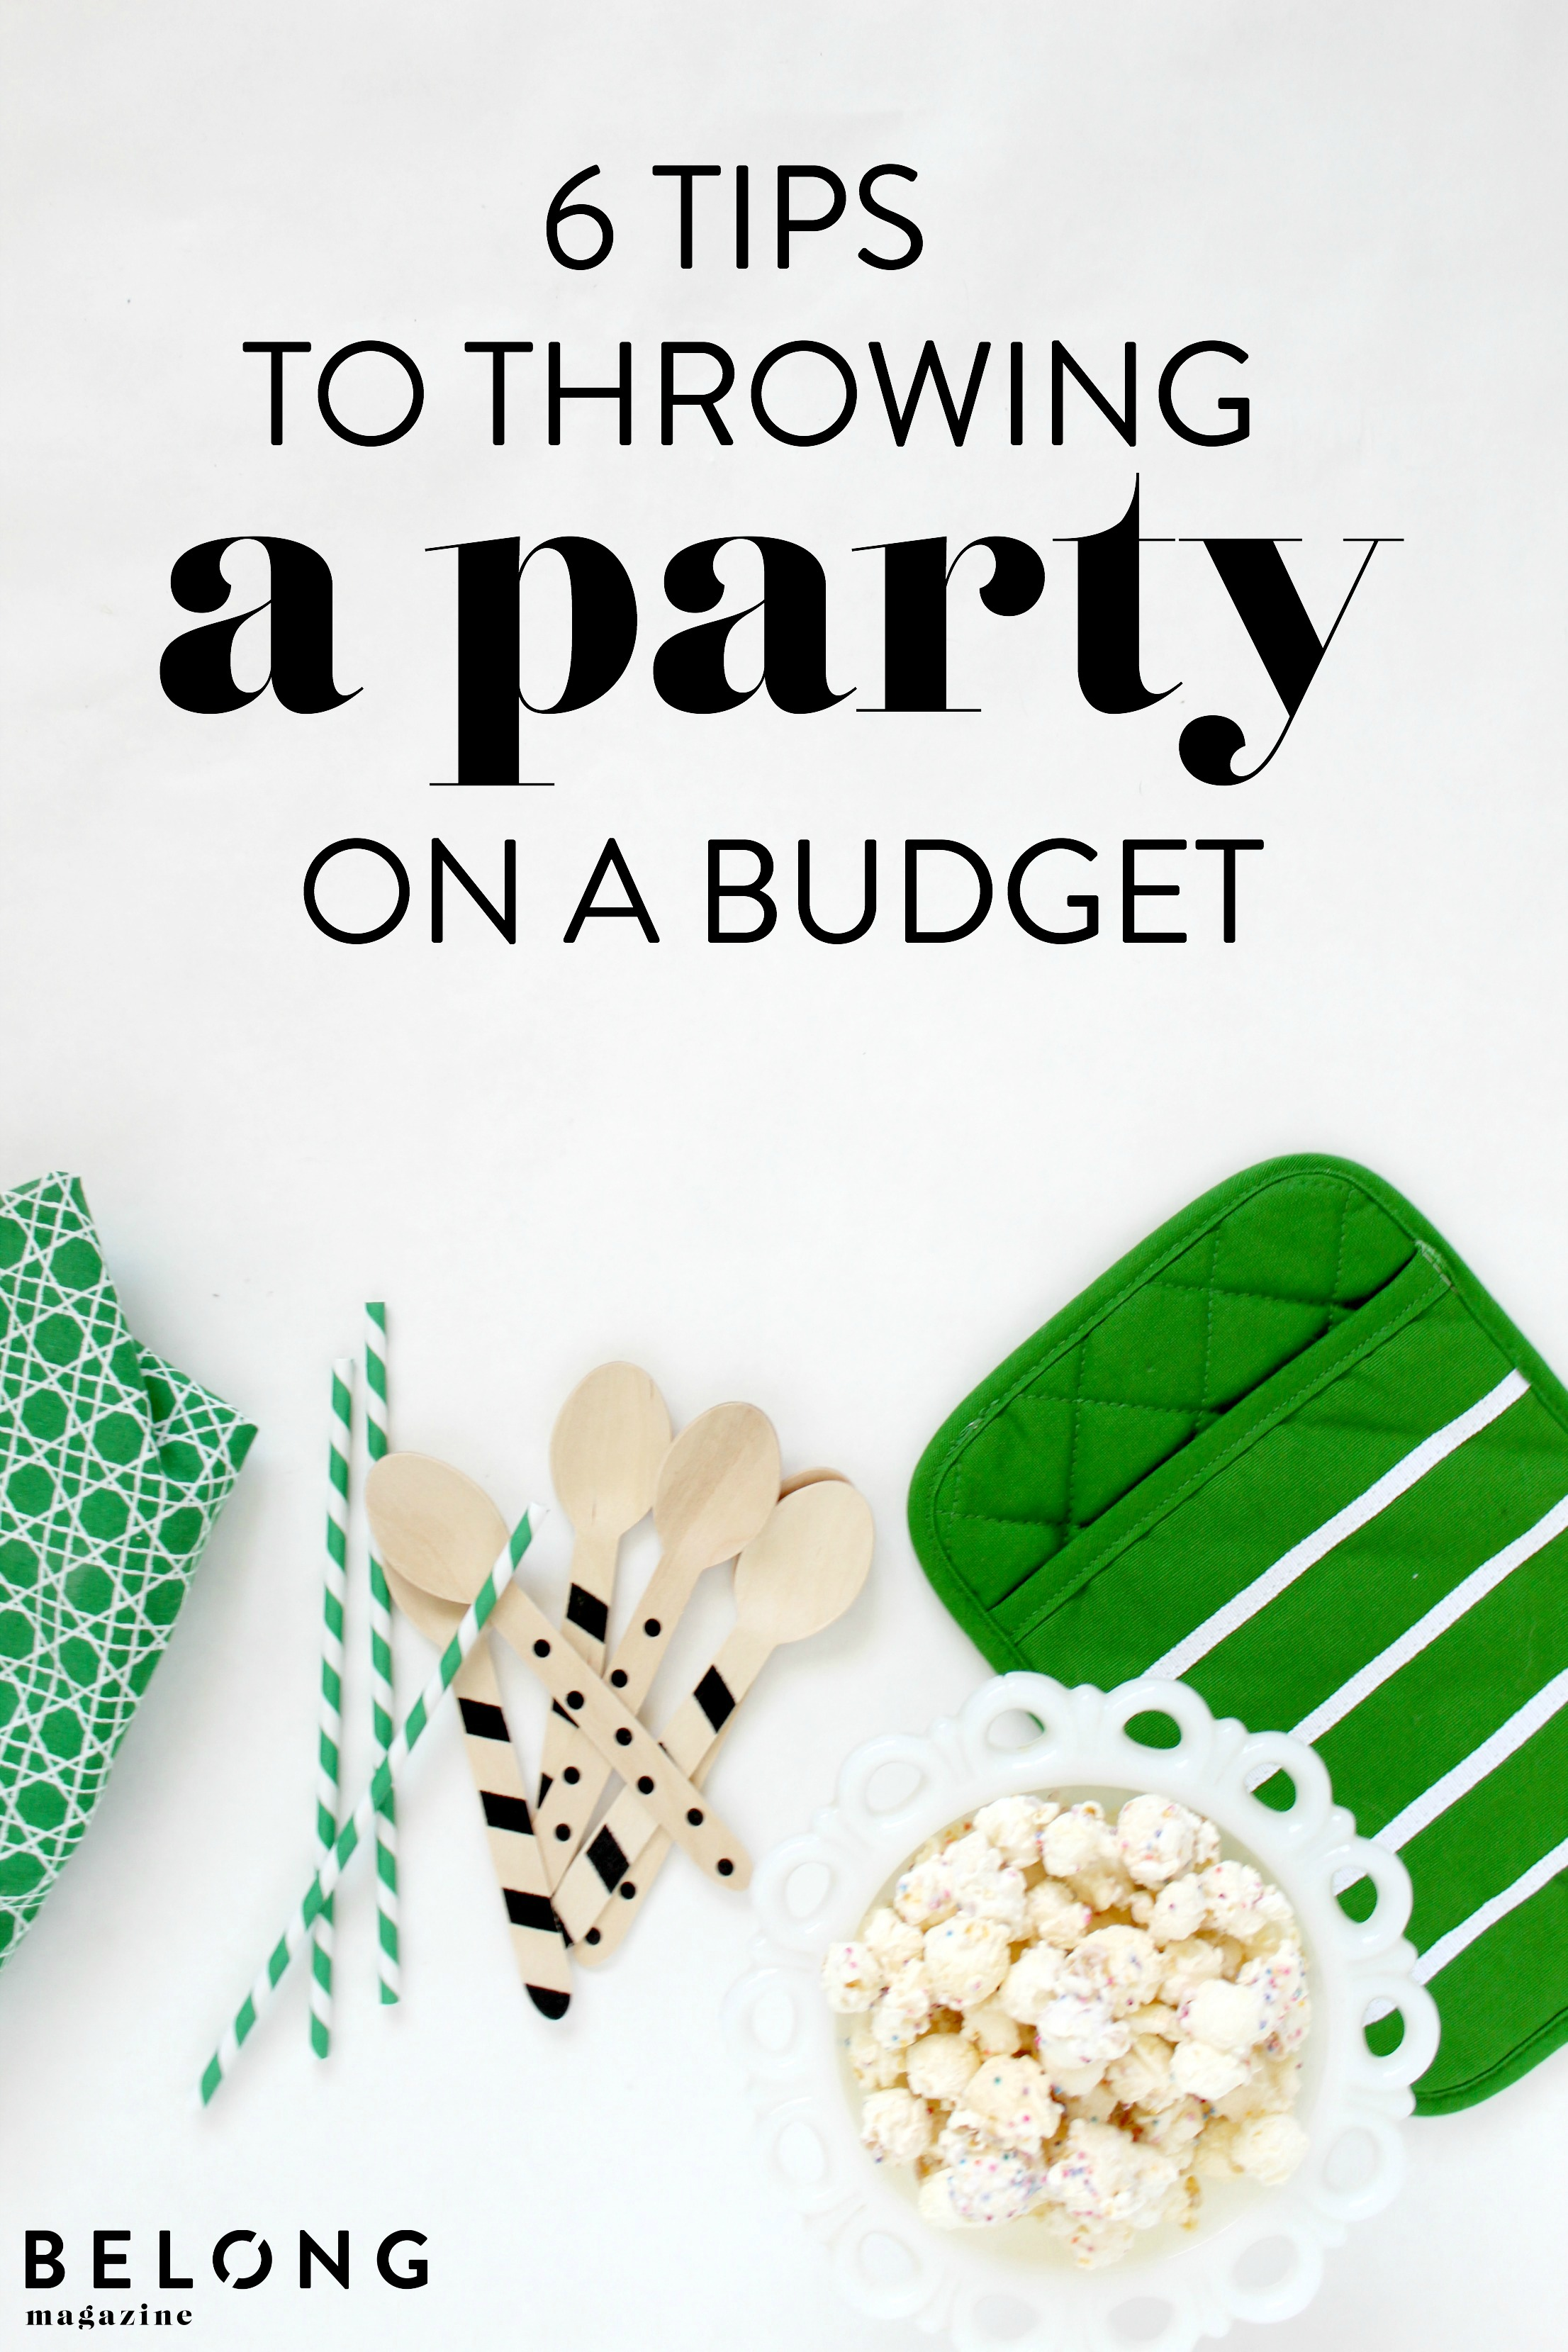 6 tips to throwing a party on a budget by Christa from @sweetoliviacelebrations for female entrepreneurs, lady bosses, women in business and the busy creative on the Belong Magazine blog